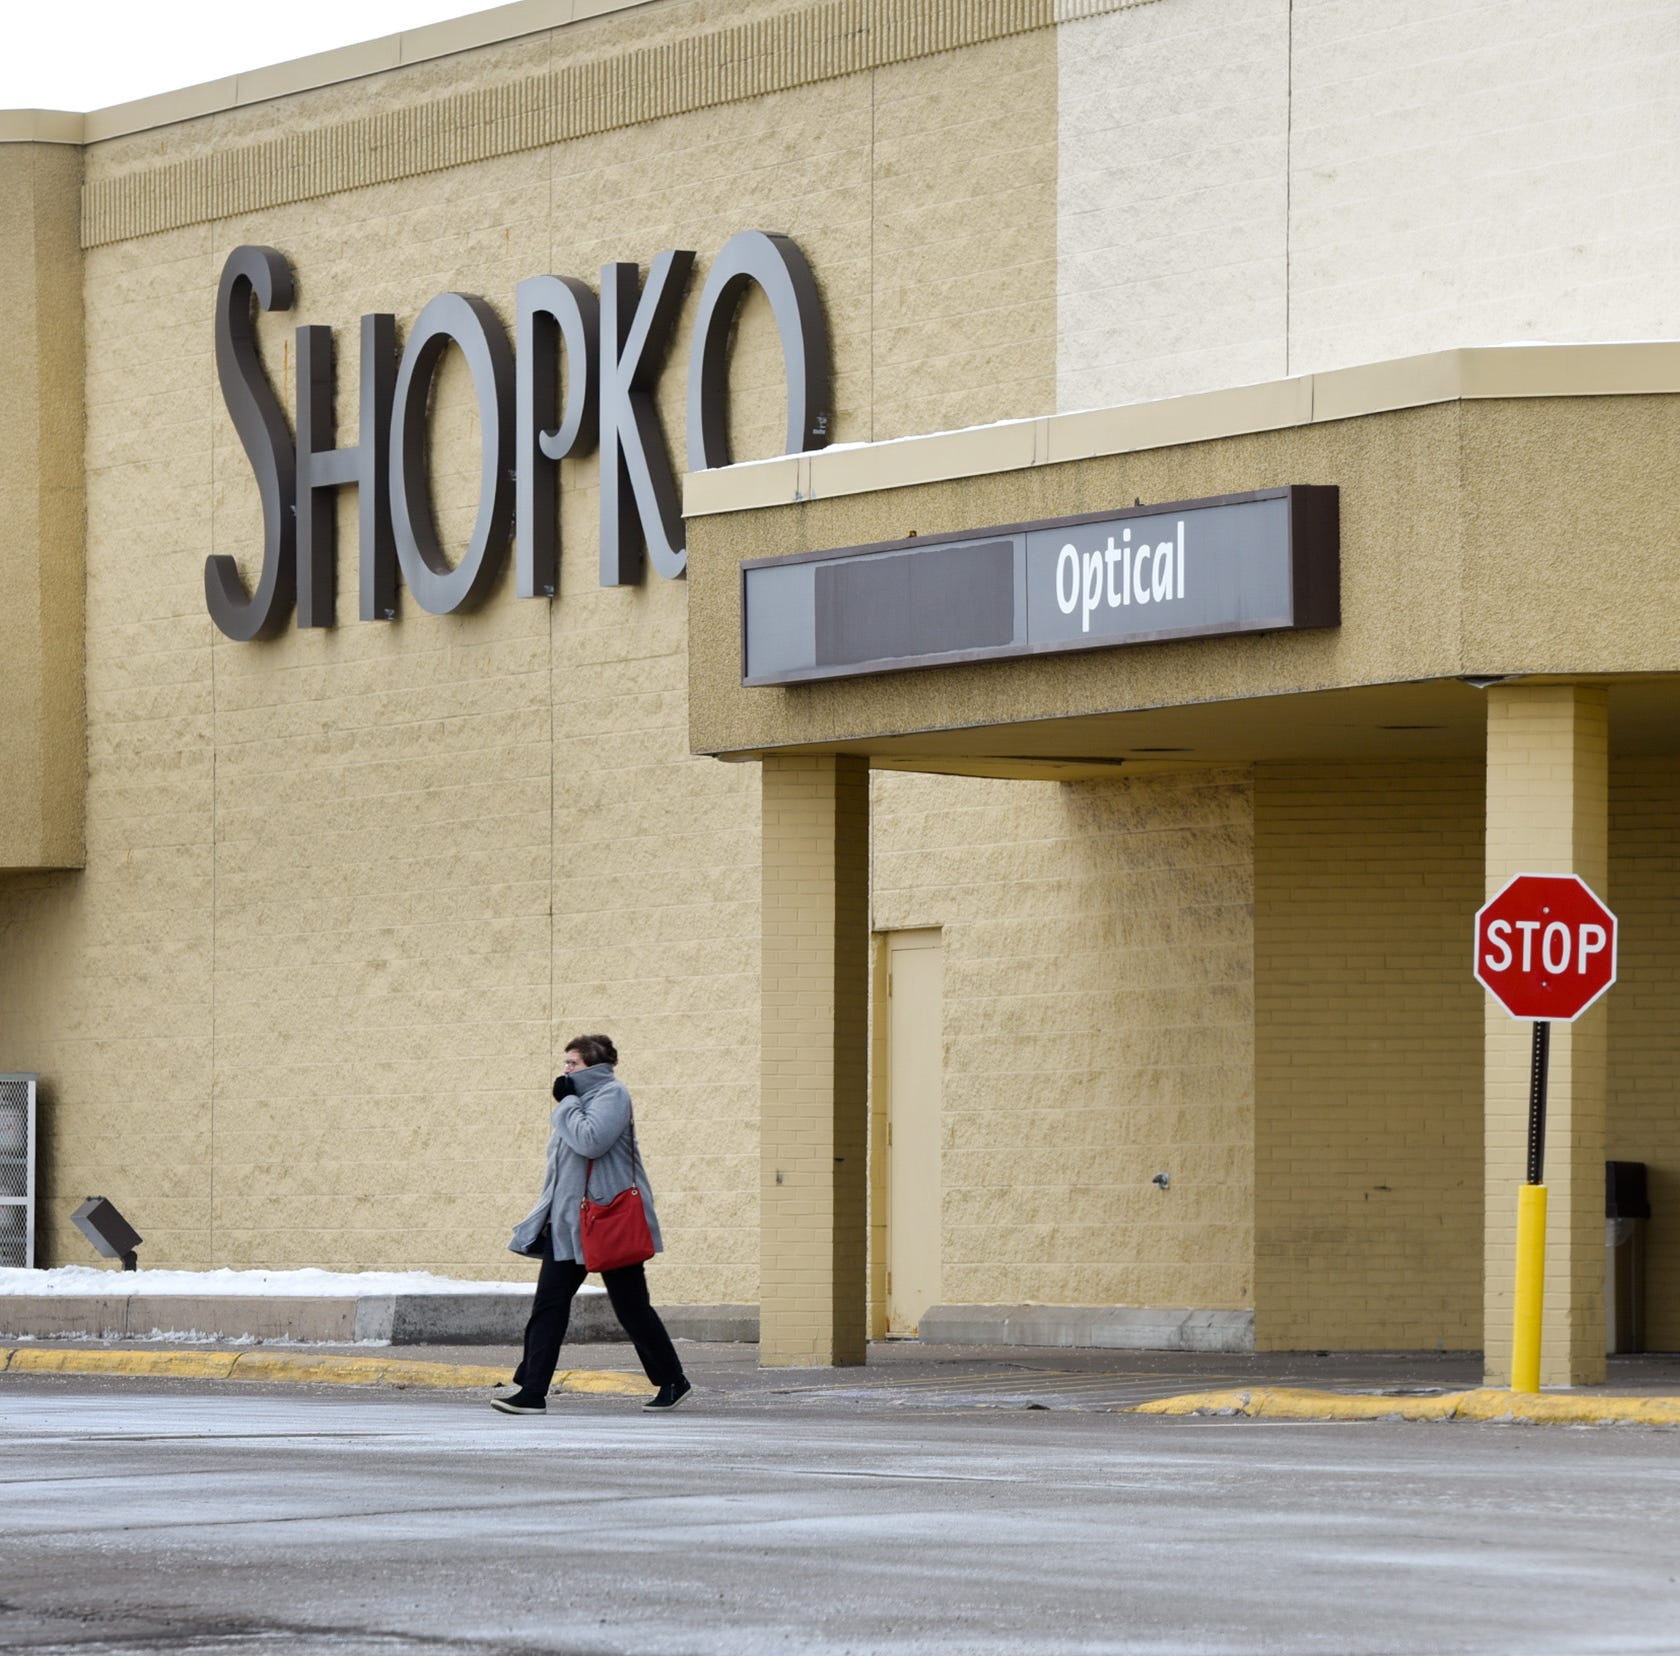 St. Cloud Shopko East store to close in May